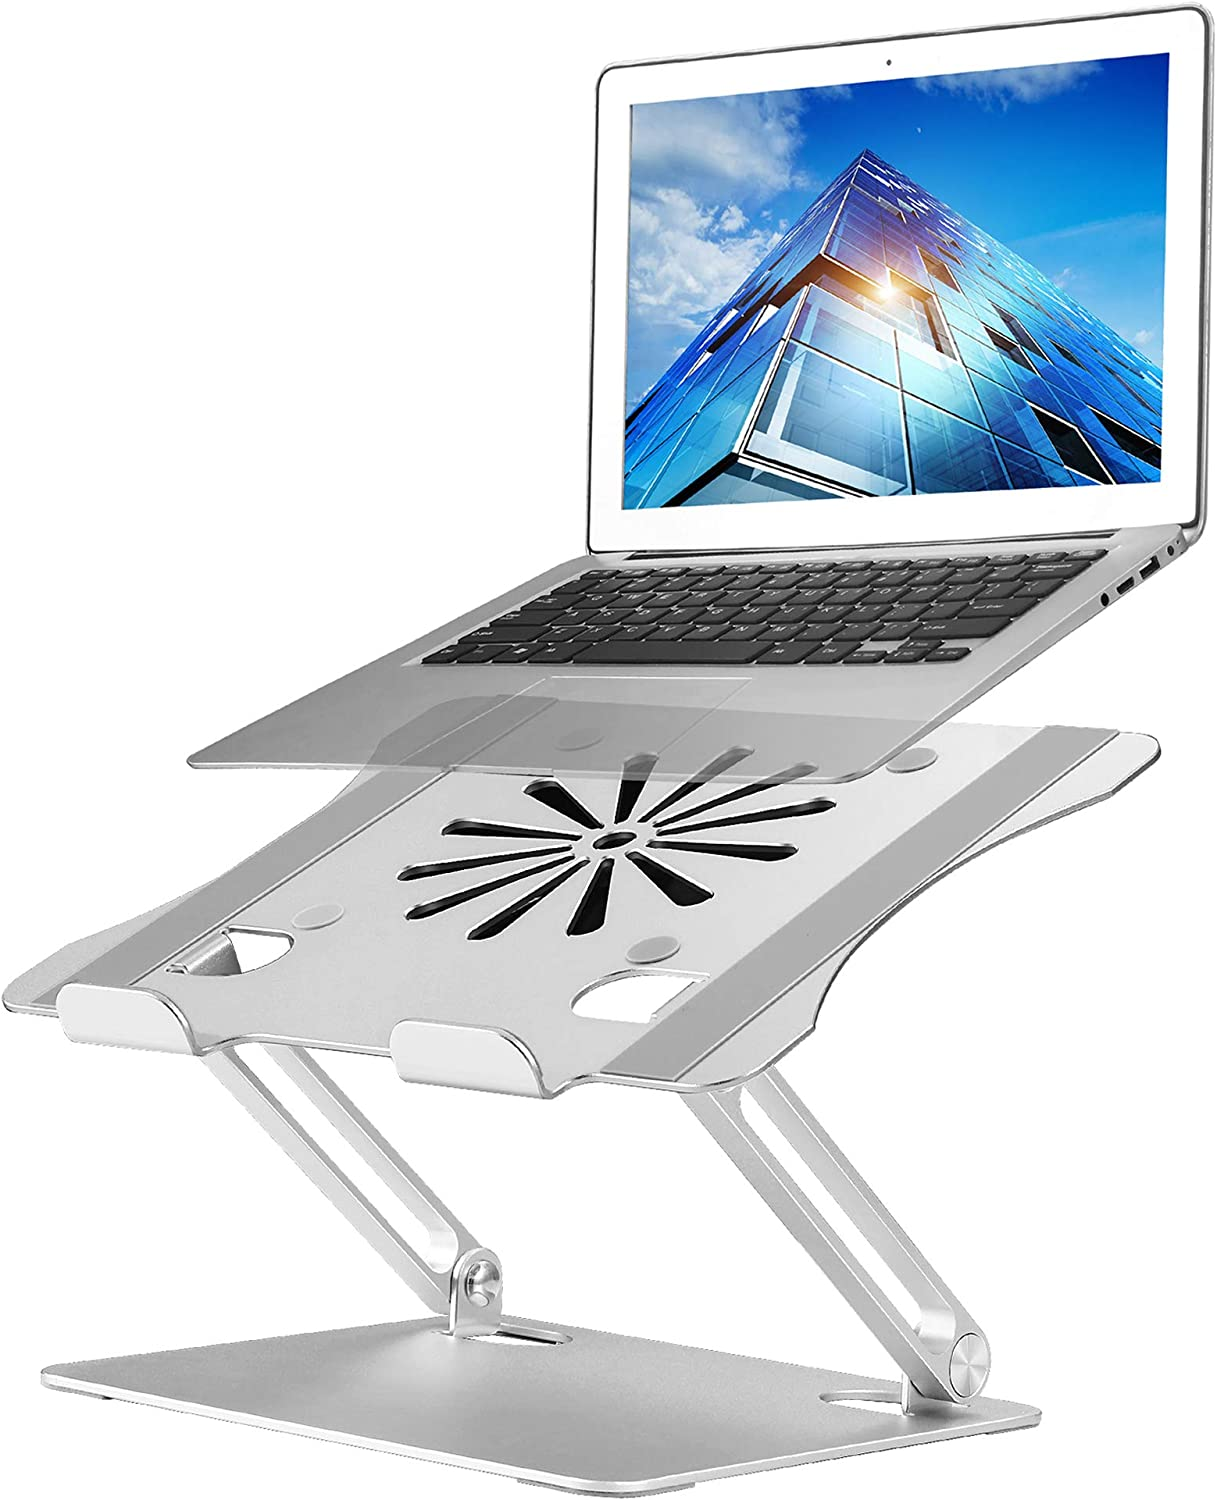 Upgraded Adjustable Laptop Stand with Cooling Fan, Ergonomic Multi-Angle Computer Laptop Stand, Portable Laptop Holder Compatible with MacBook, Air, Pro, Dell XPS, Alienware All Laptops 11-17.3""